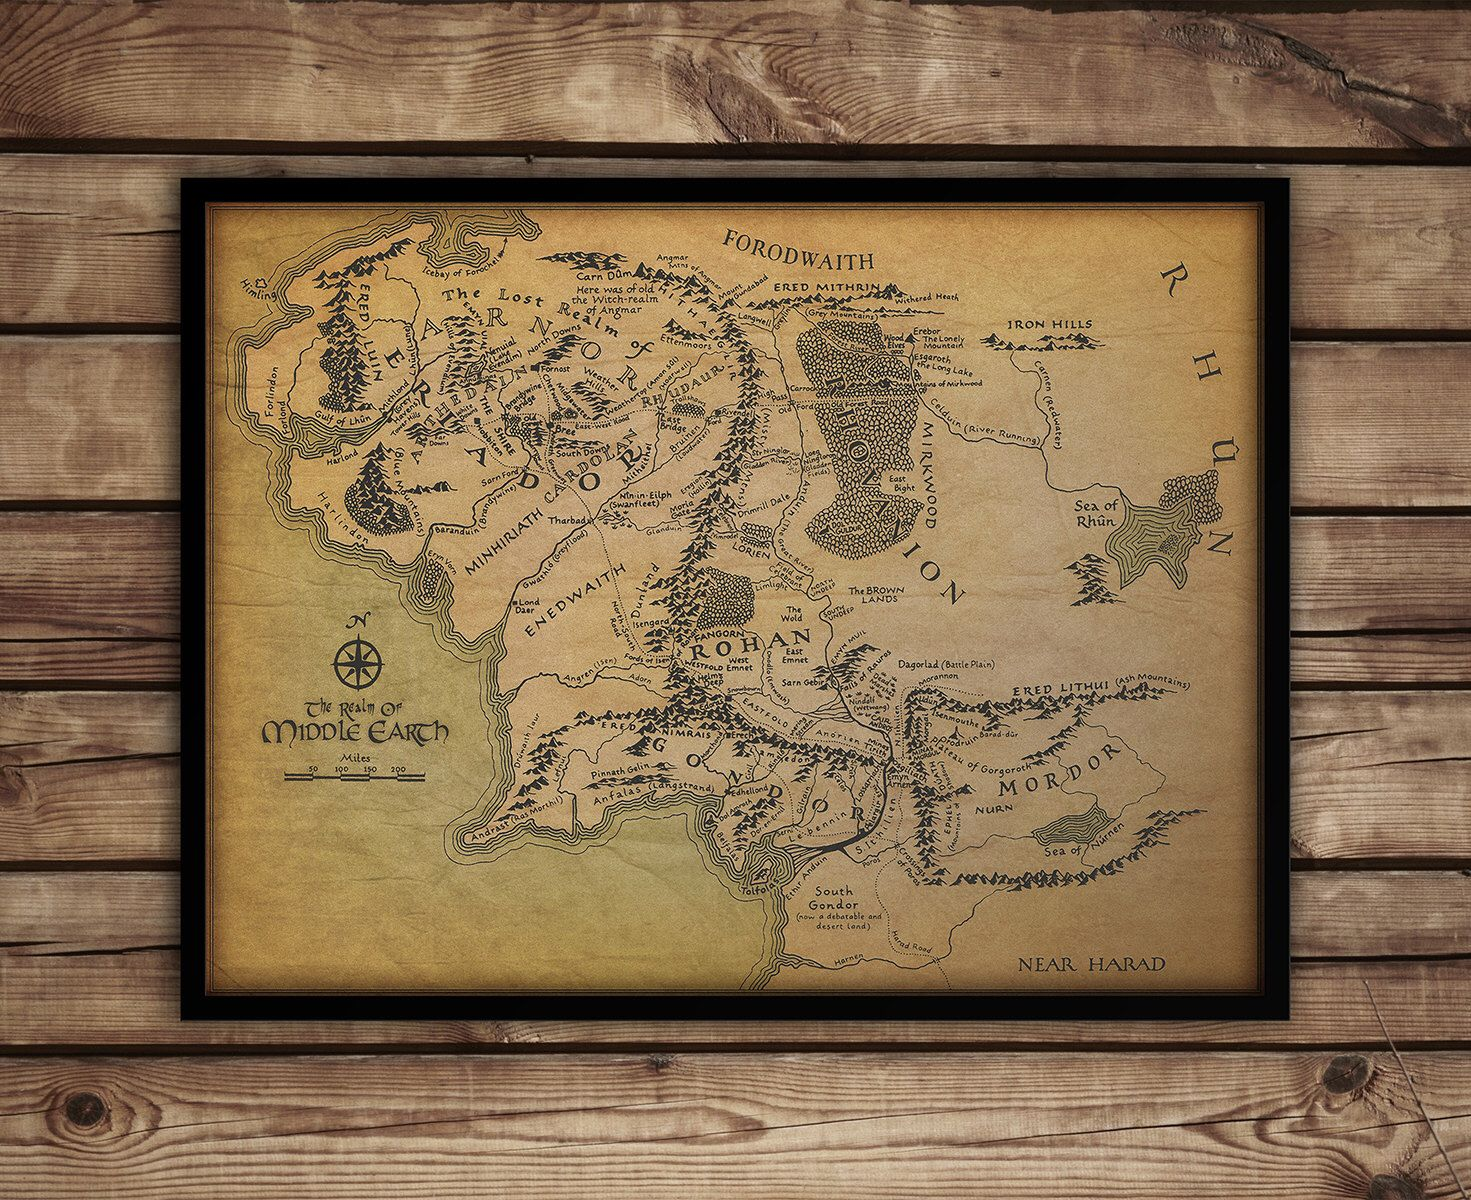 map of middle earth lord of the rings map middle earth map lord of the rings poster large map 30 x 40fan art lotr free shipping by primeprint on